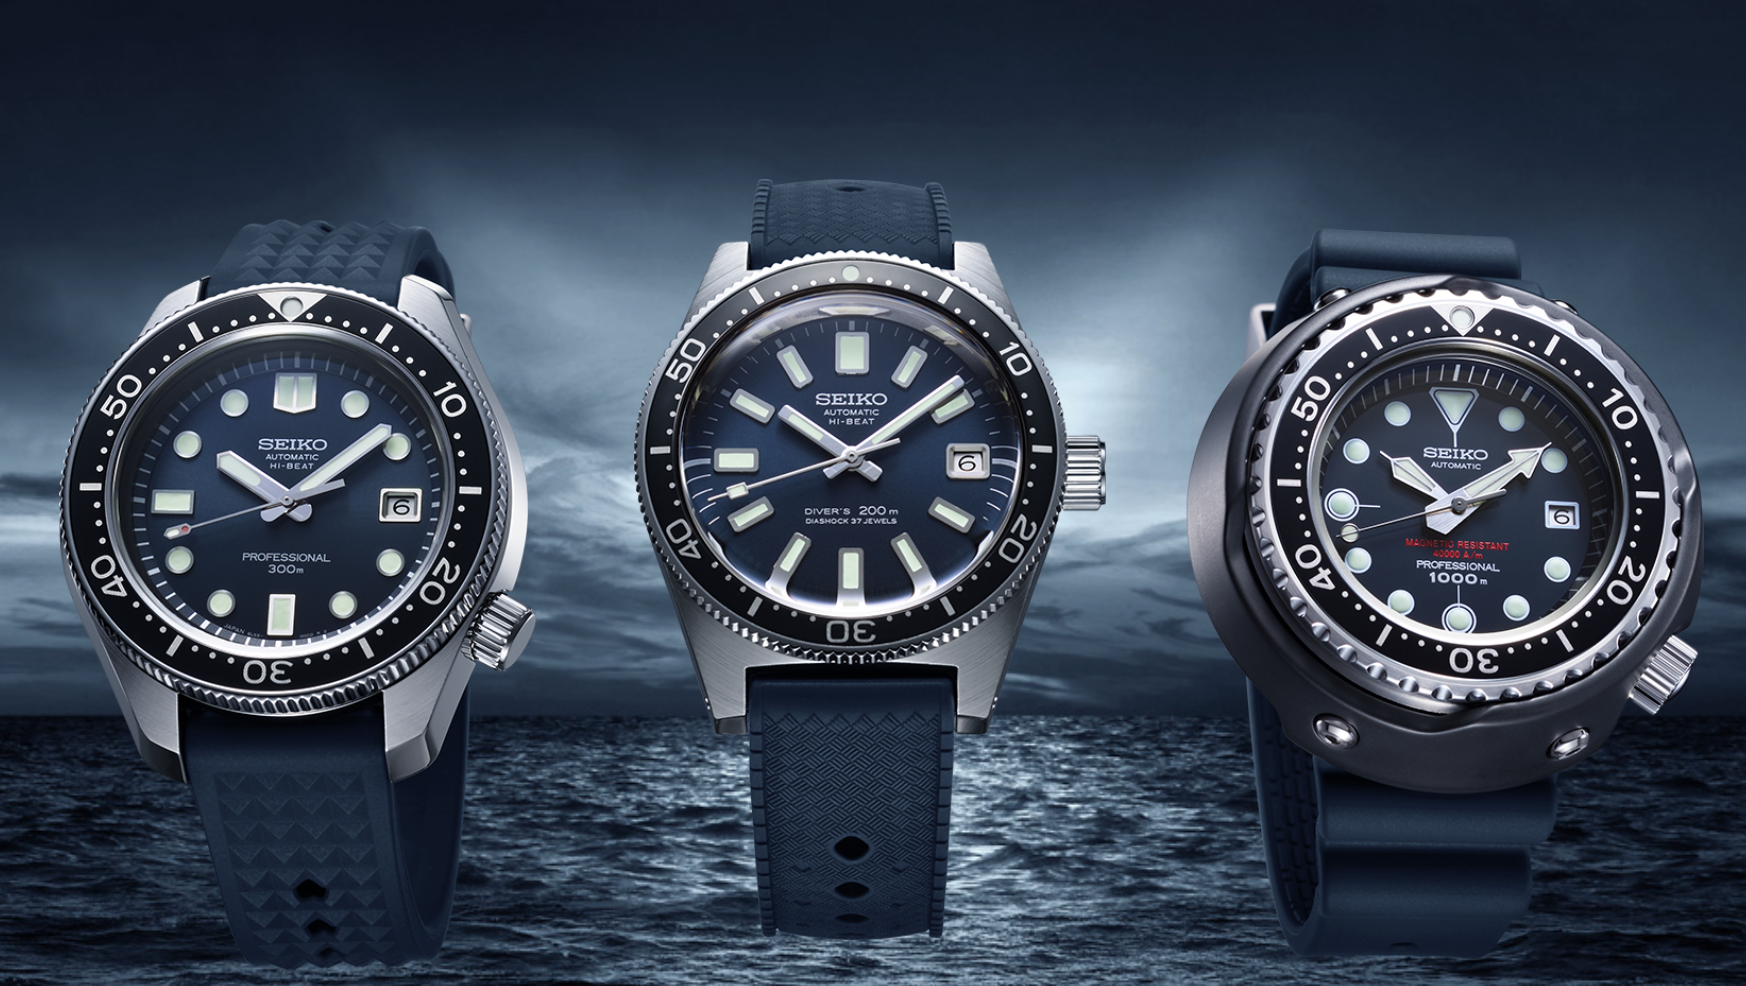 Seiko's latest dive watch trilogy pay tribute to three classics